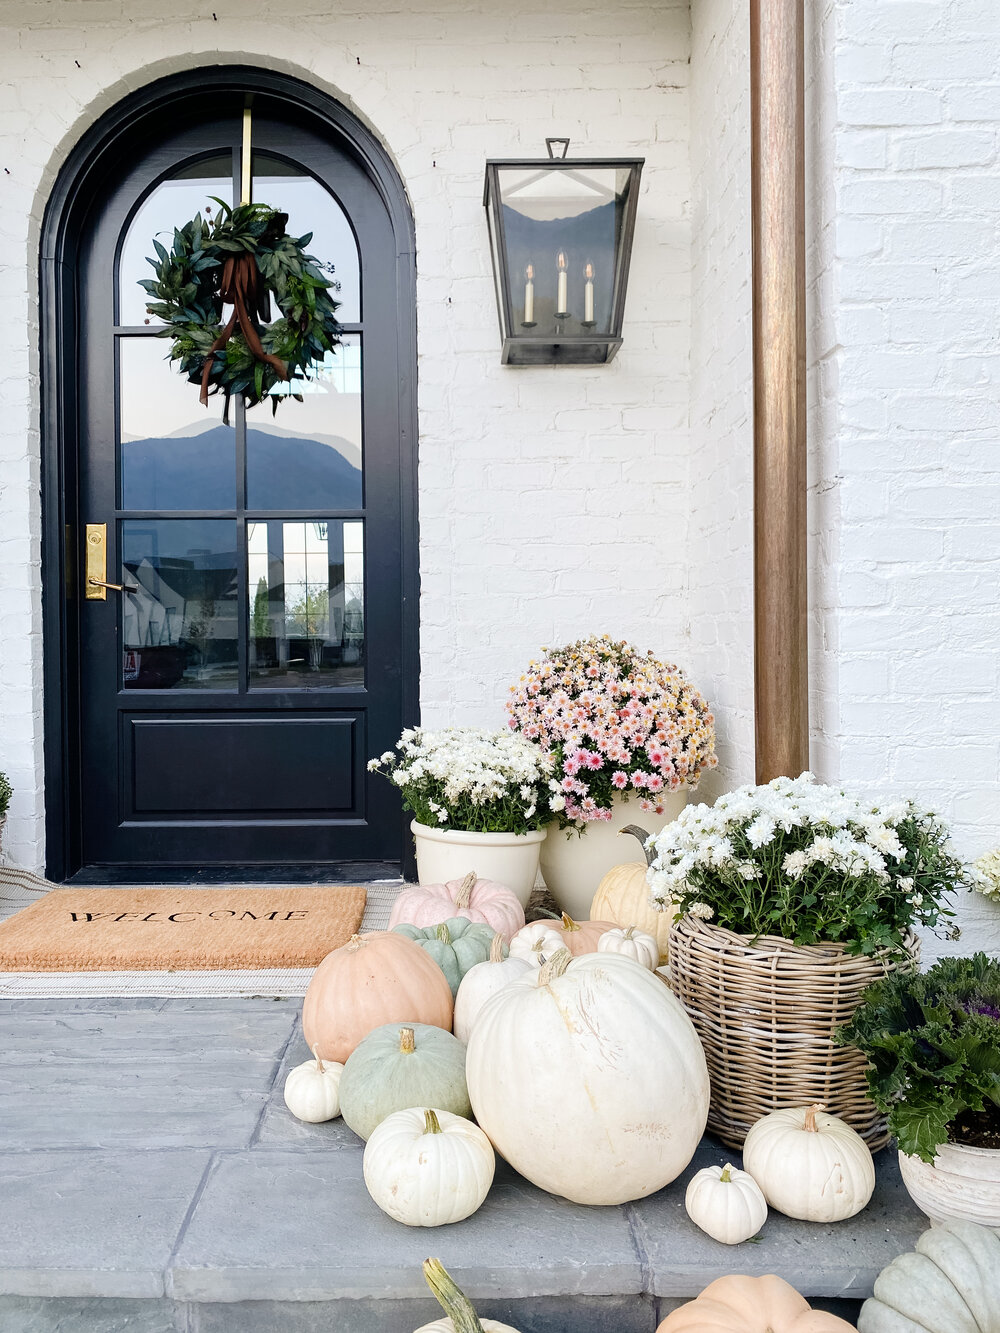 Studio McGee's Fall Porch